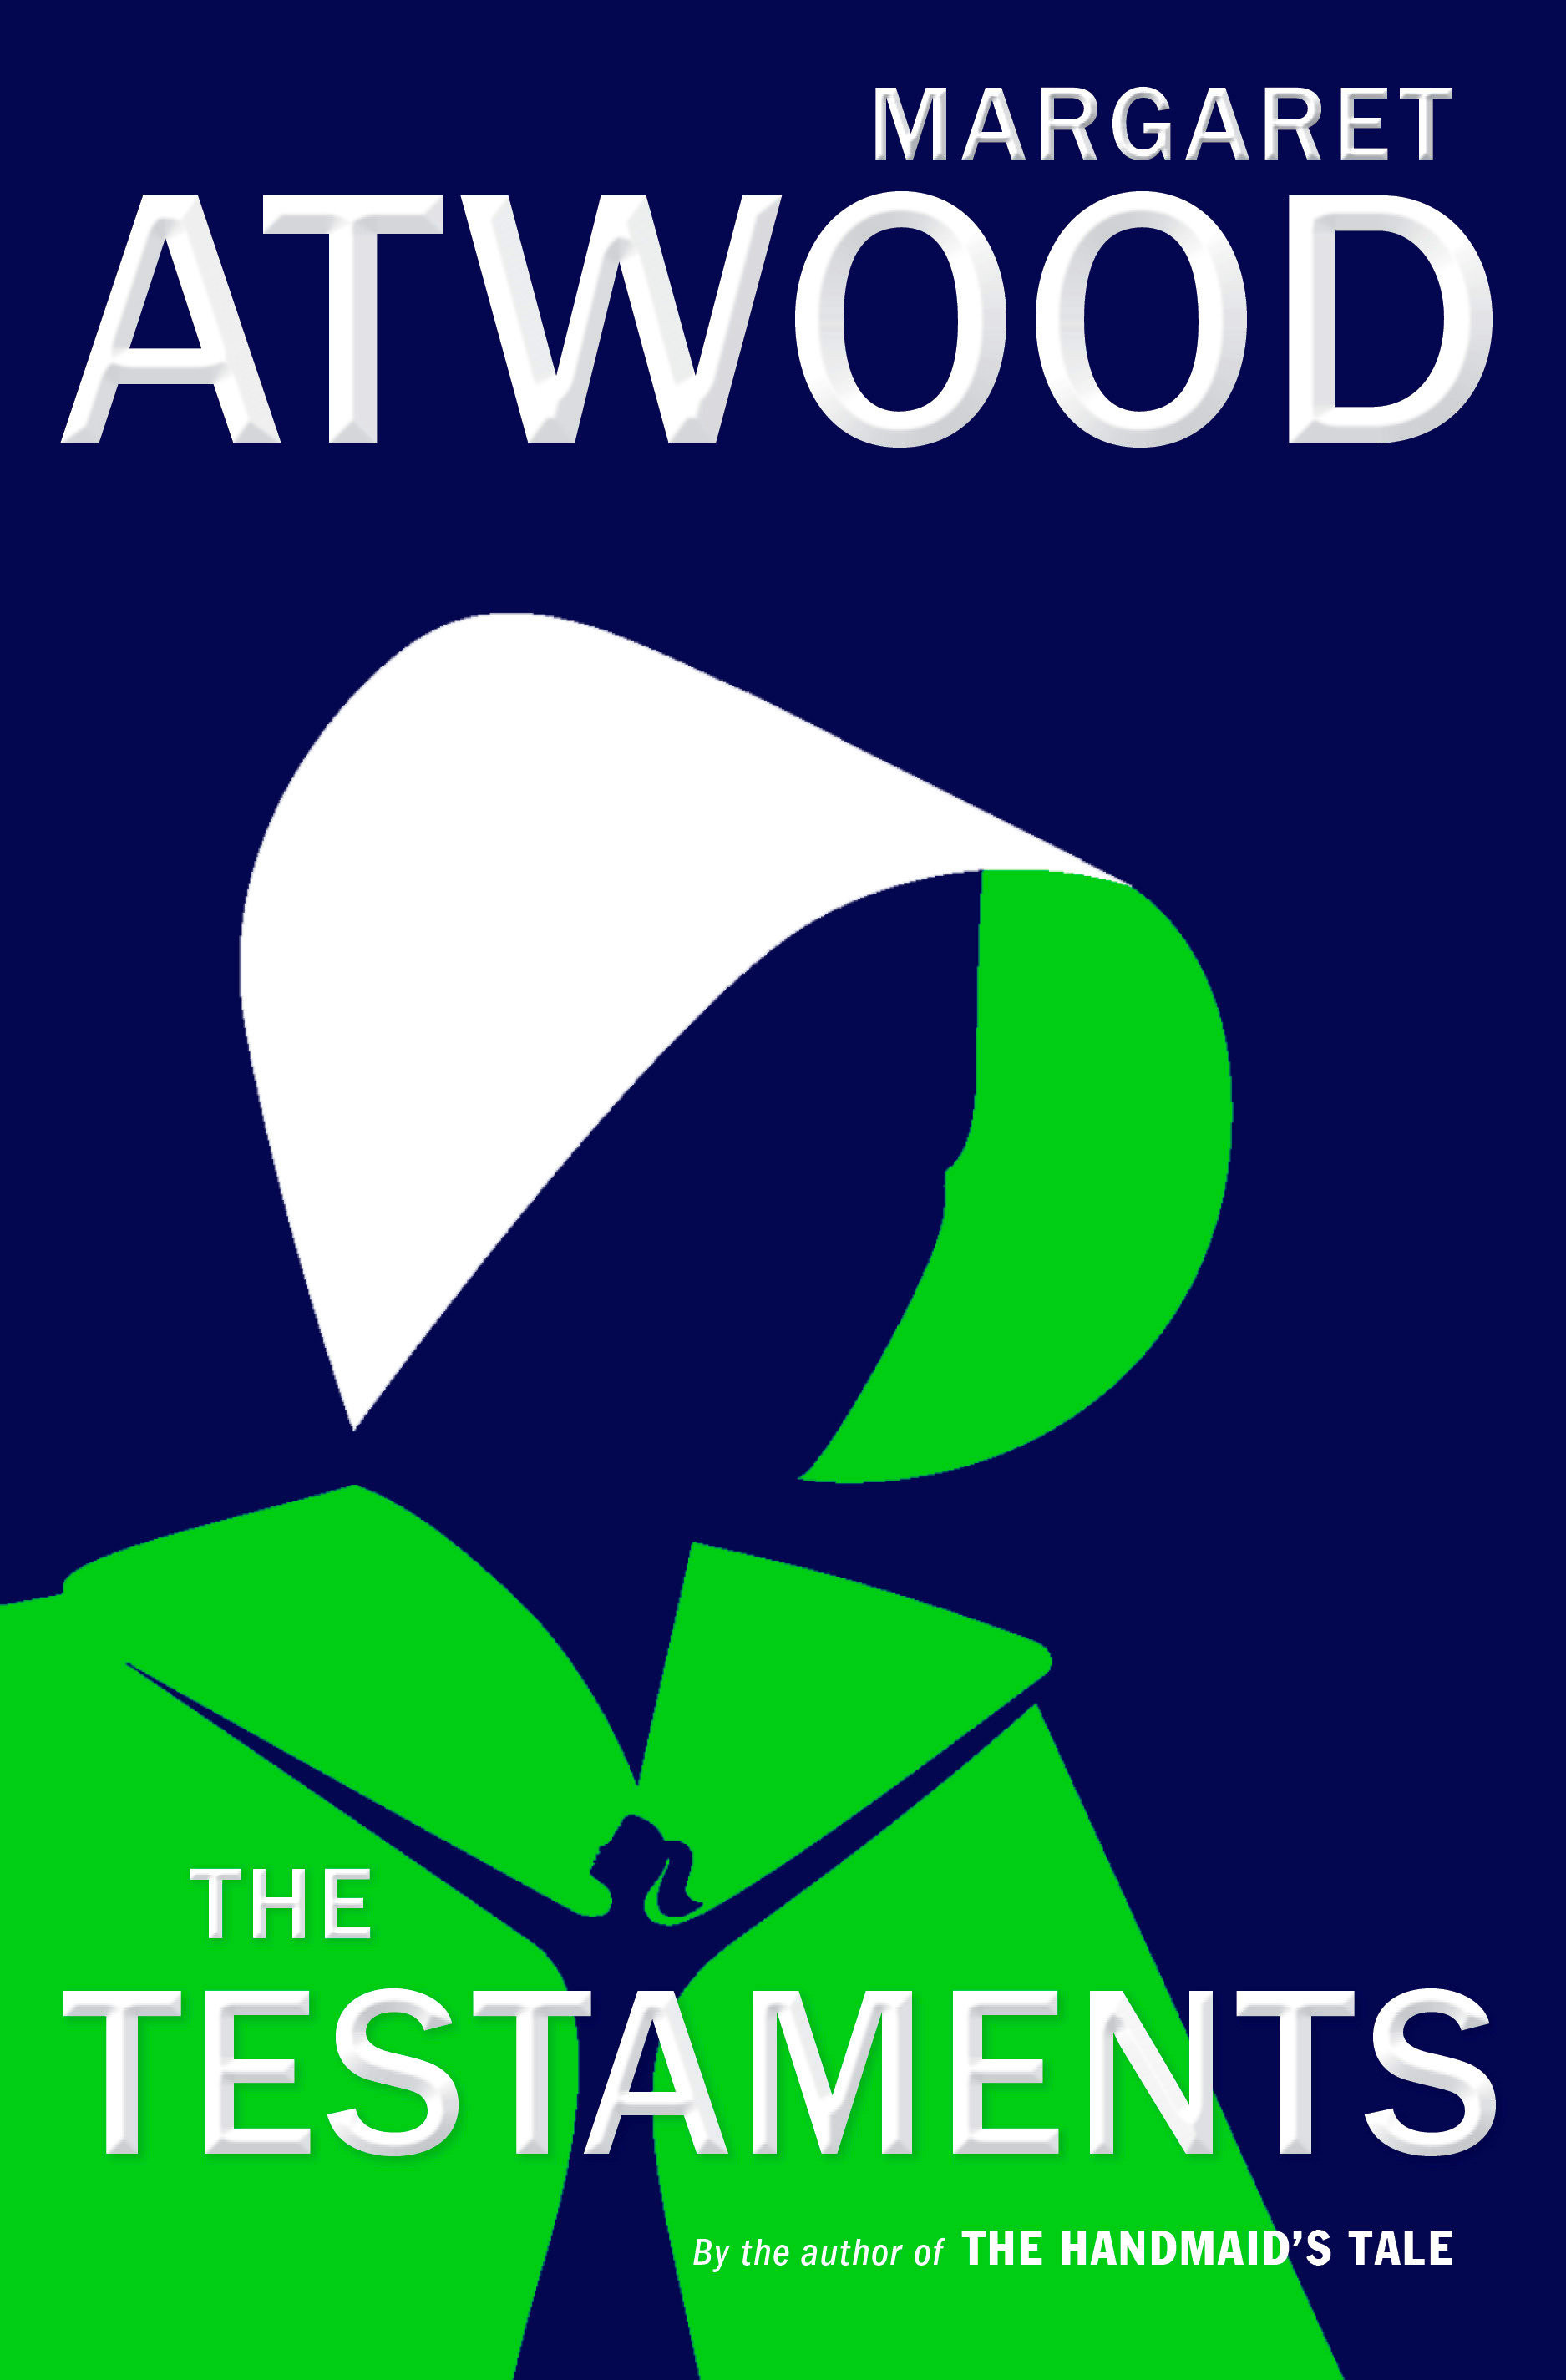 The Testaments (The Handmaid's Tale, #2)